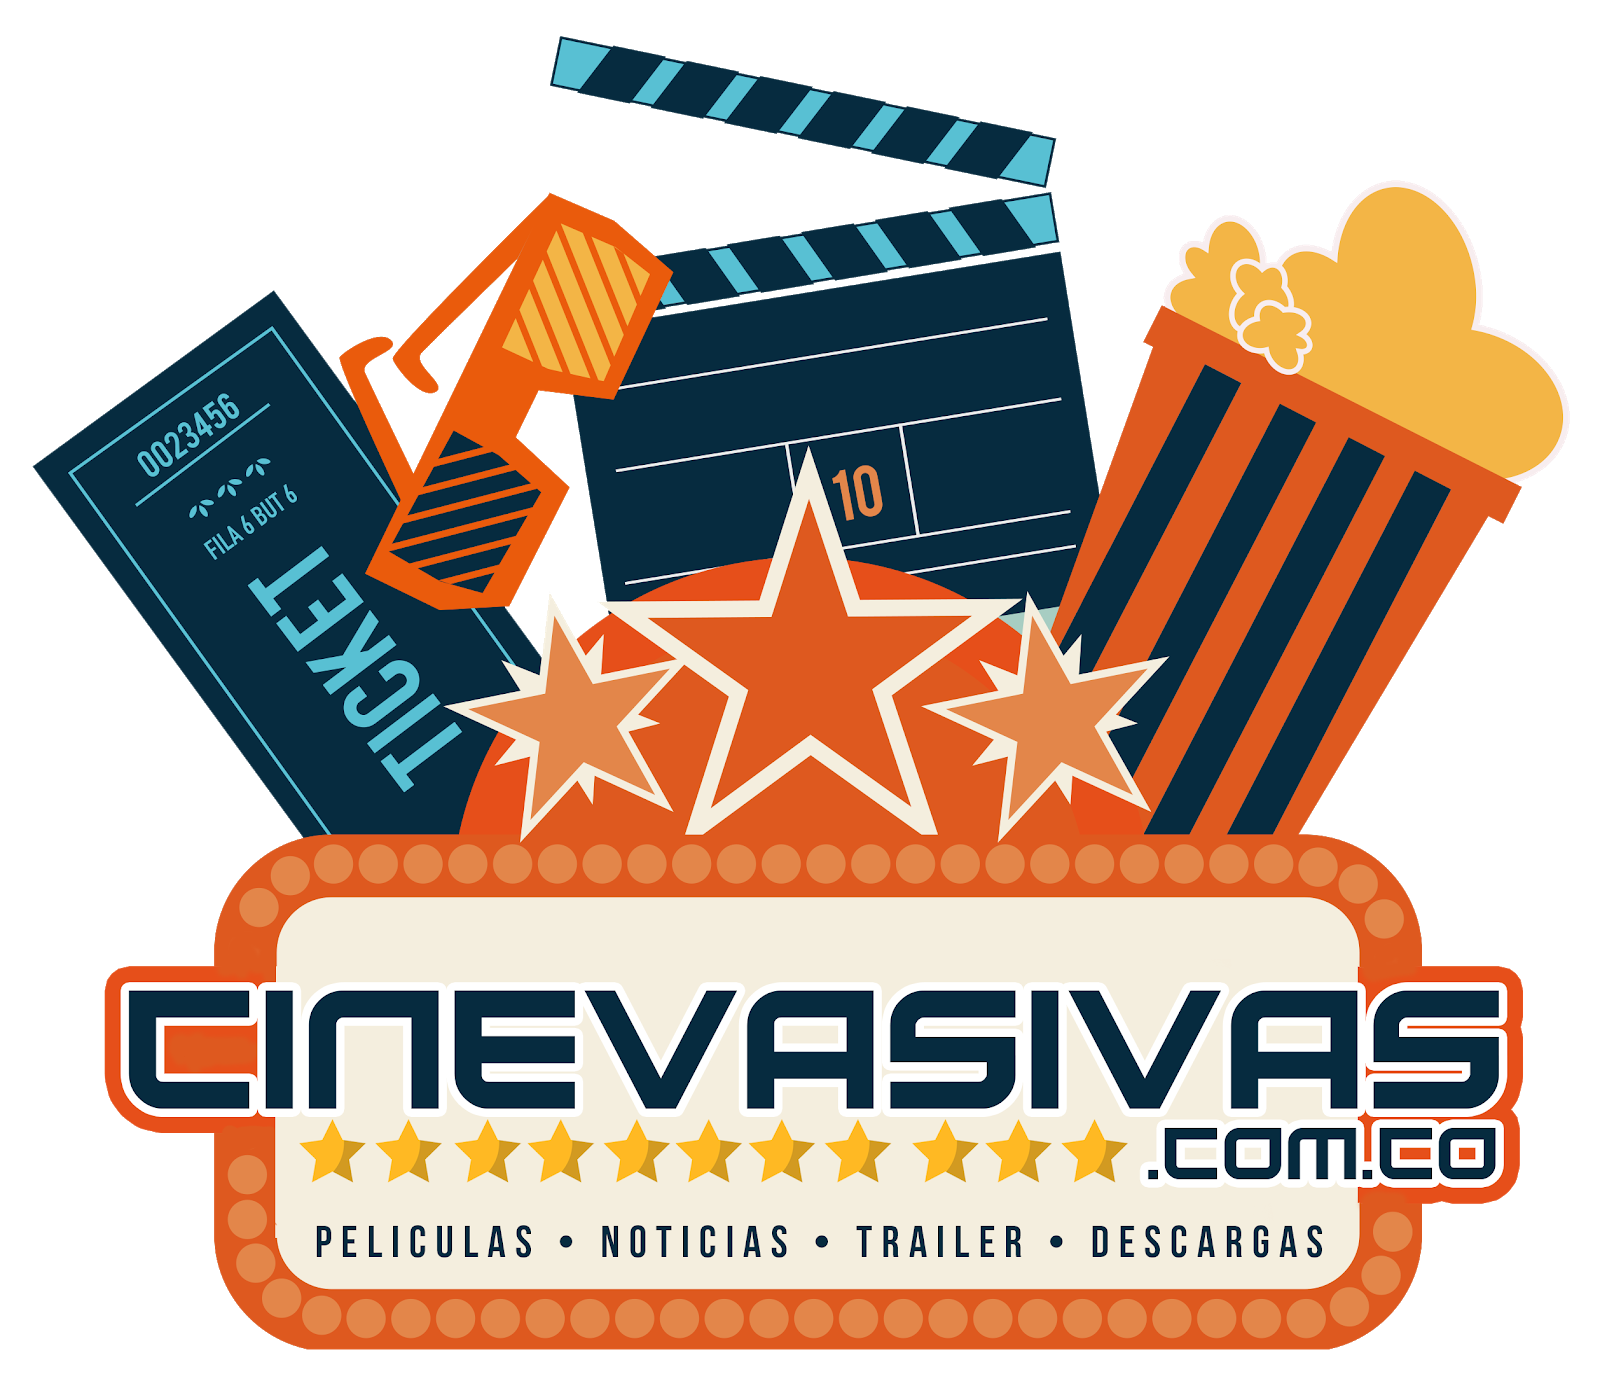 cinevasivas.com.co